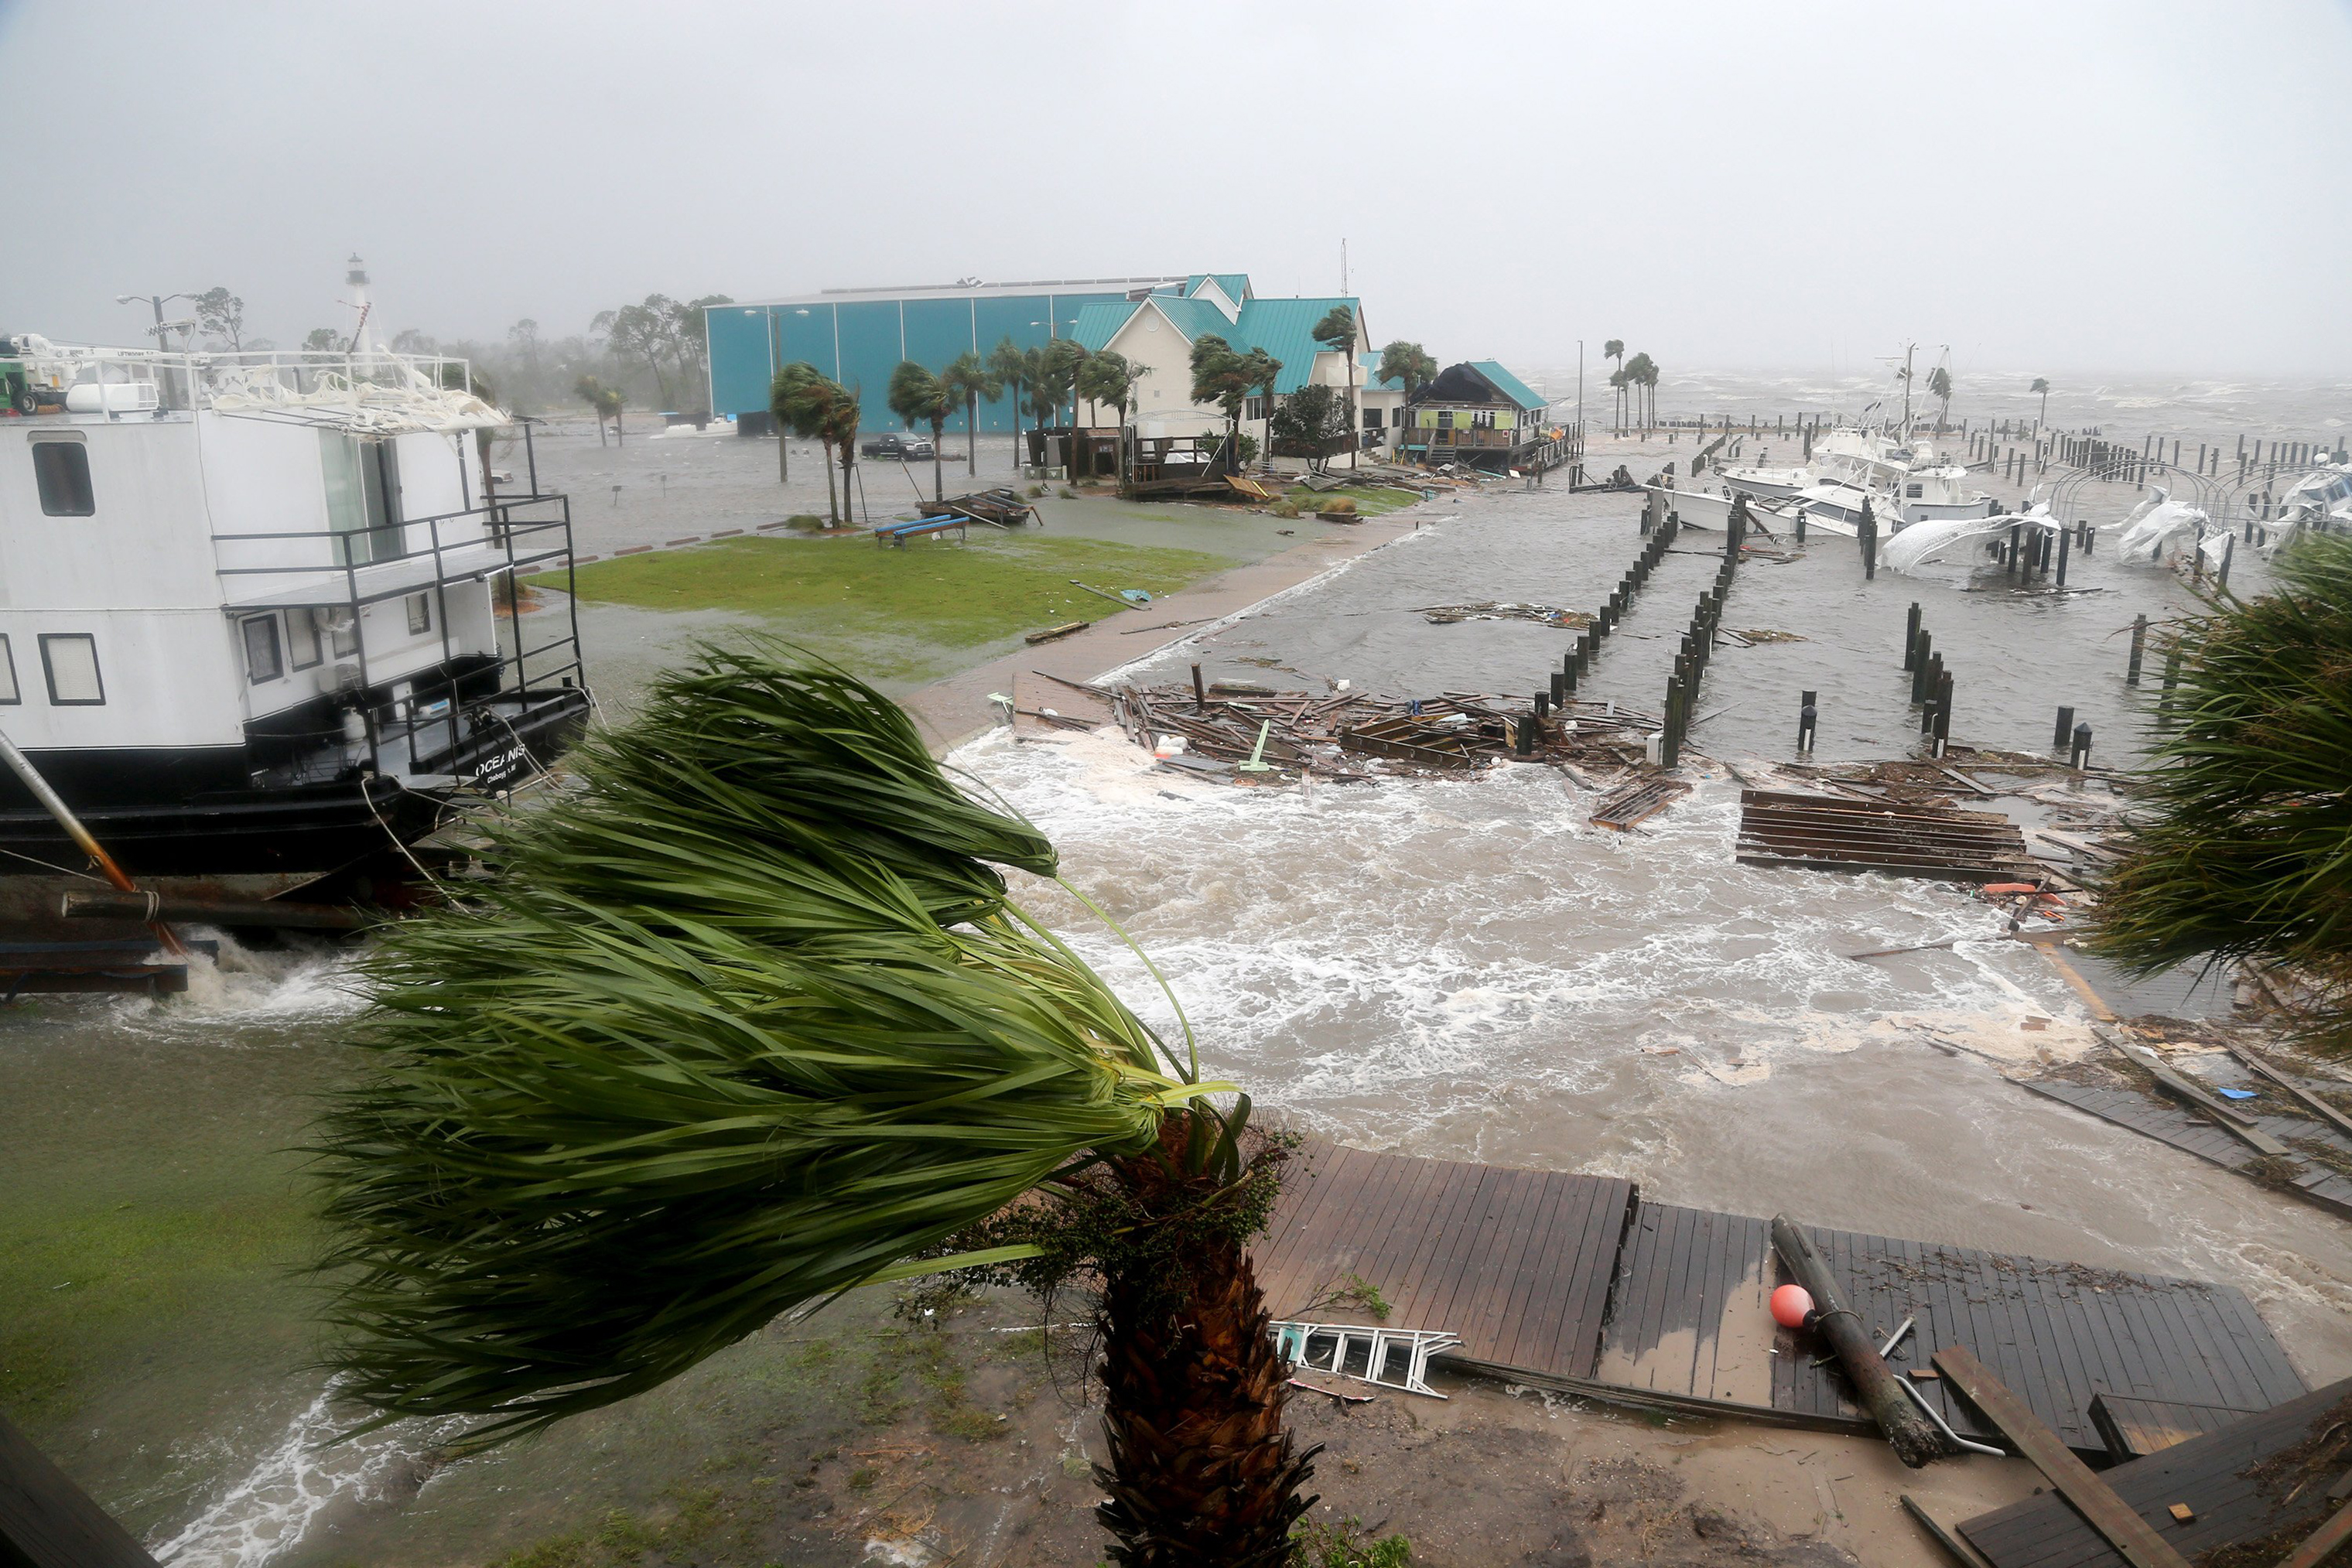 Boats lay sunk and damaged at the Port St. Joe Marina in the Florida Panhandle on Oct. 10 after Hurricane Michael made landfall near Mexico Beach.